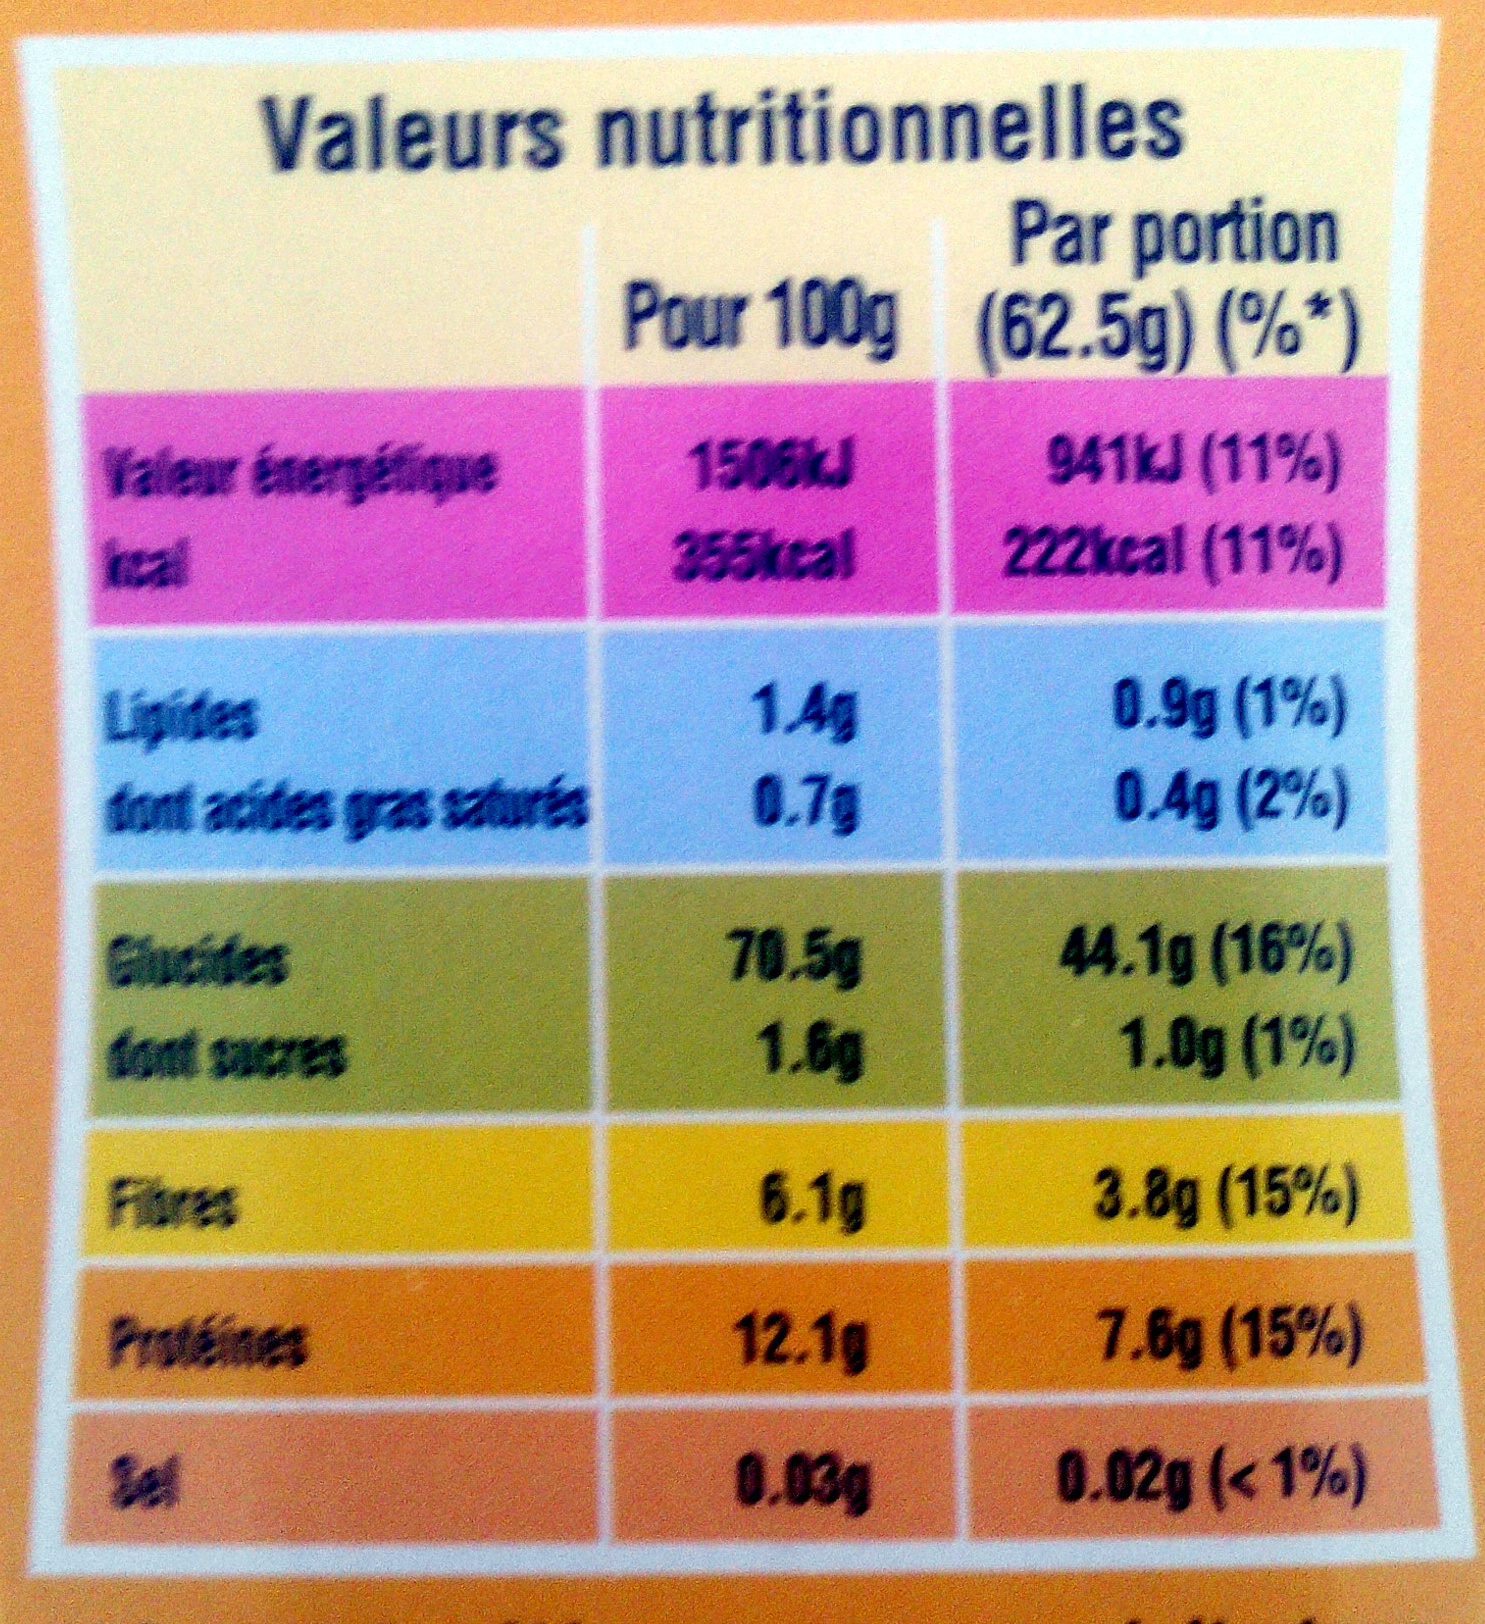 Ebly® 5 min - Informations nutritionnelles